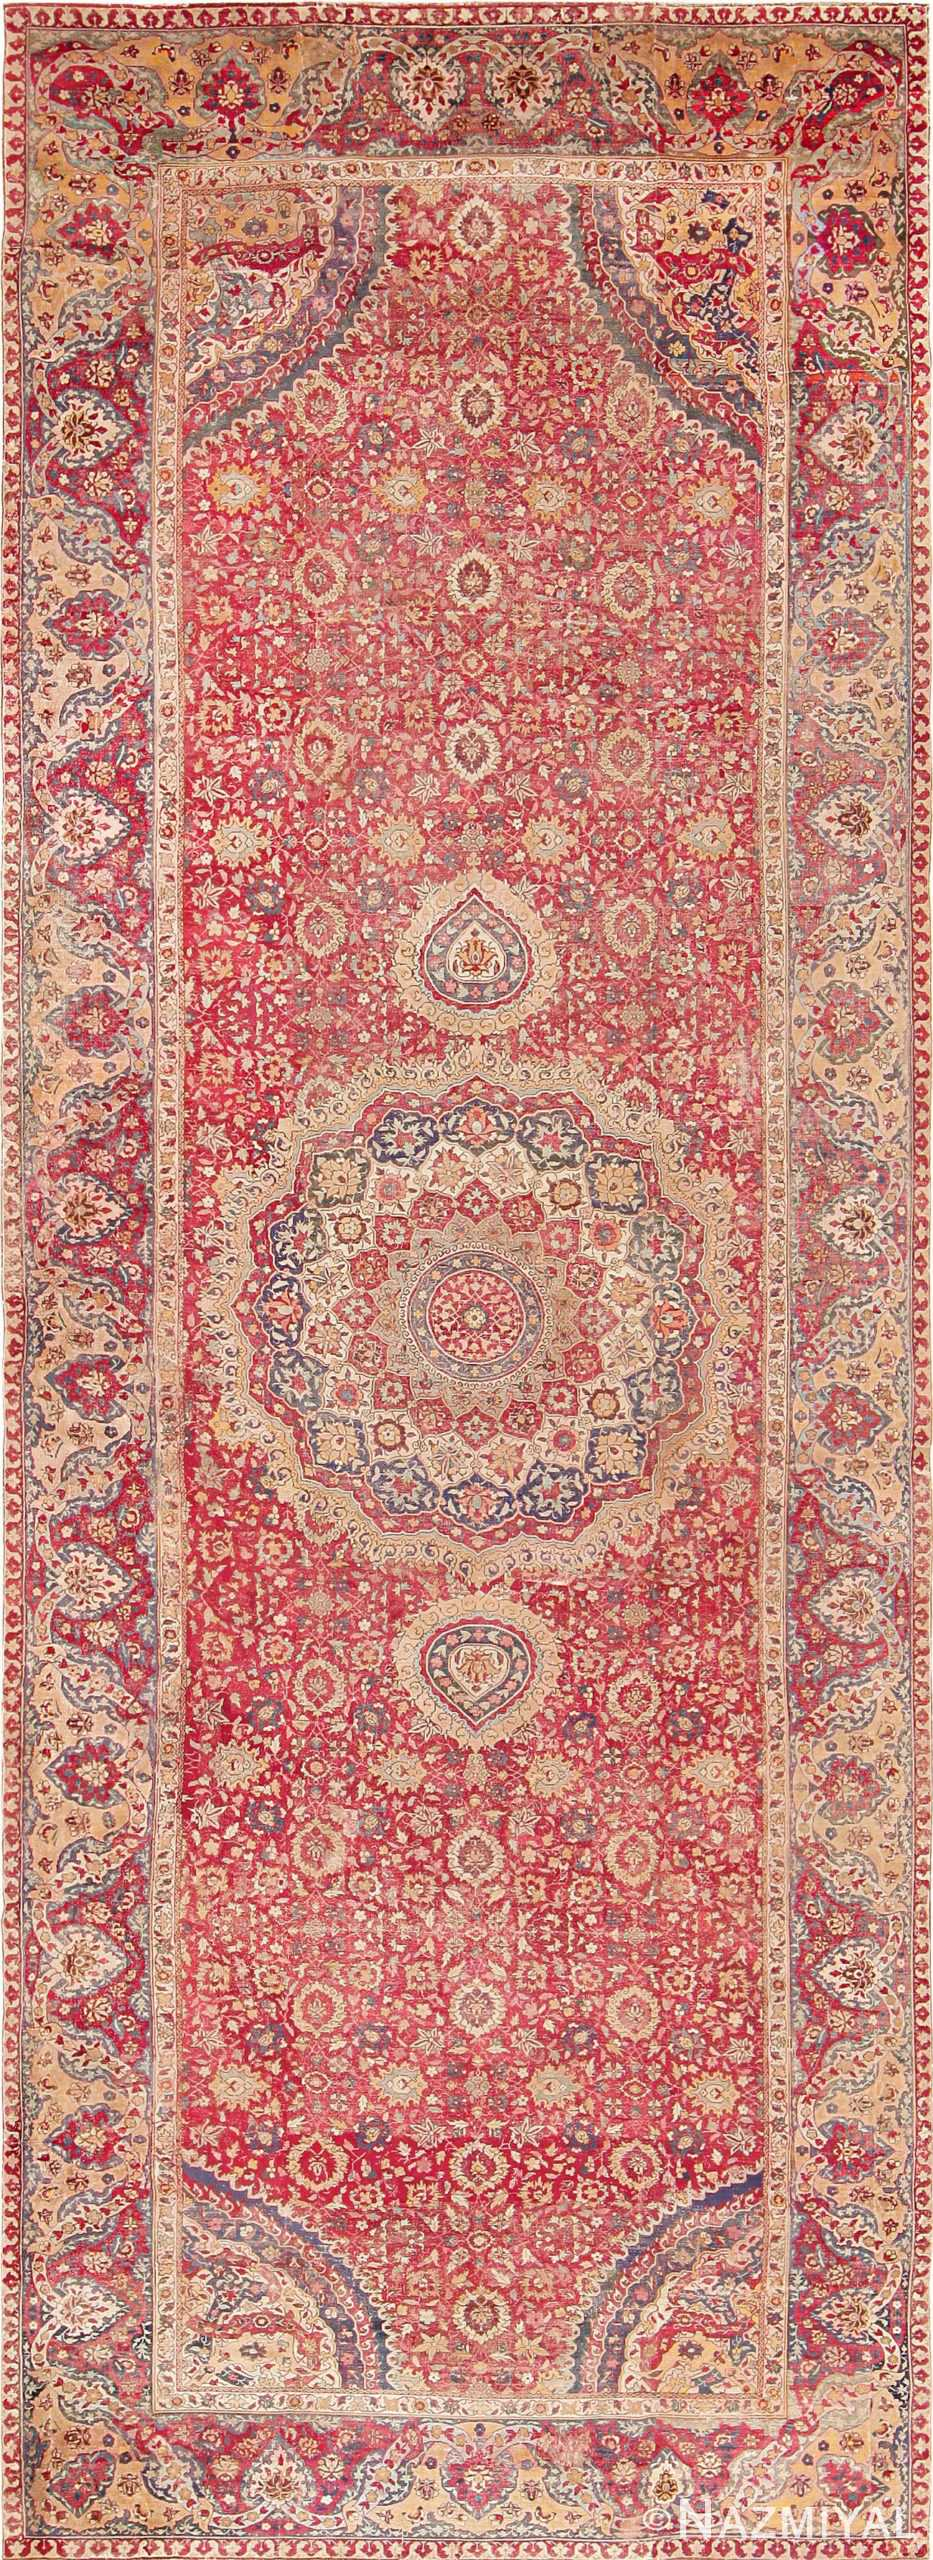 Famous Carpet Traditions